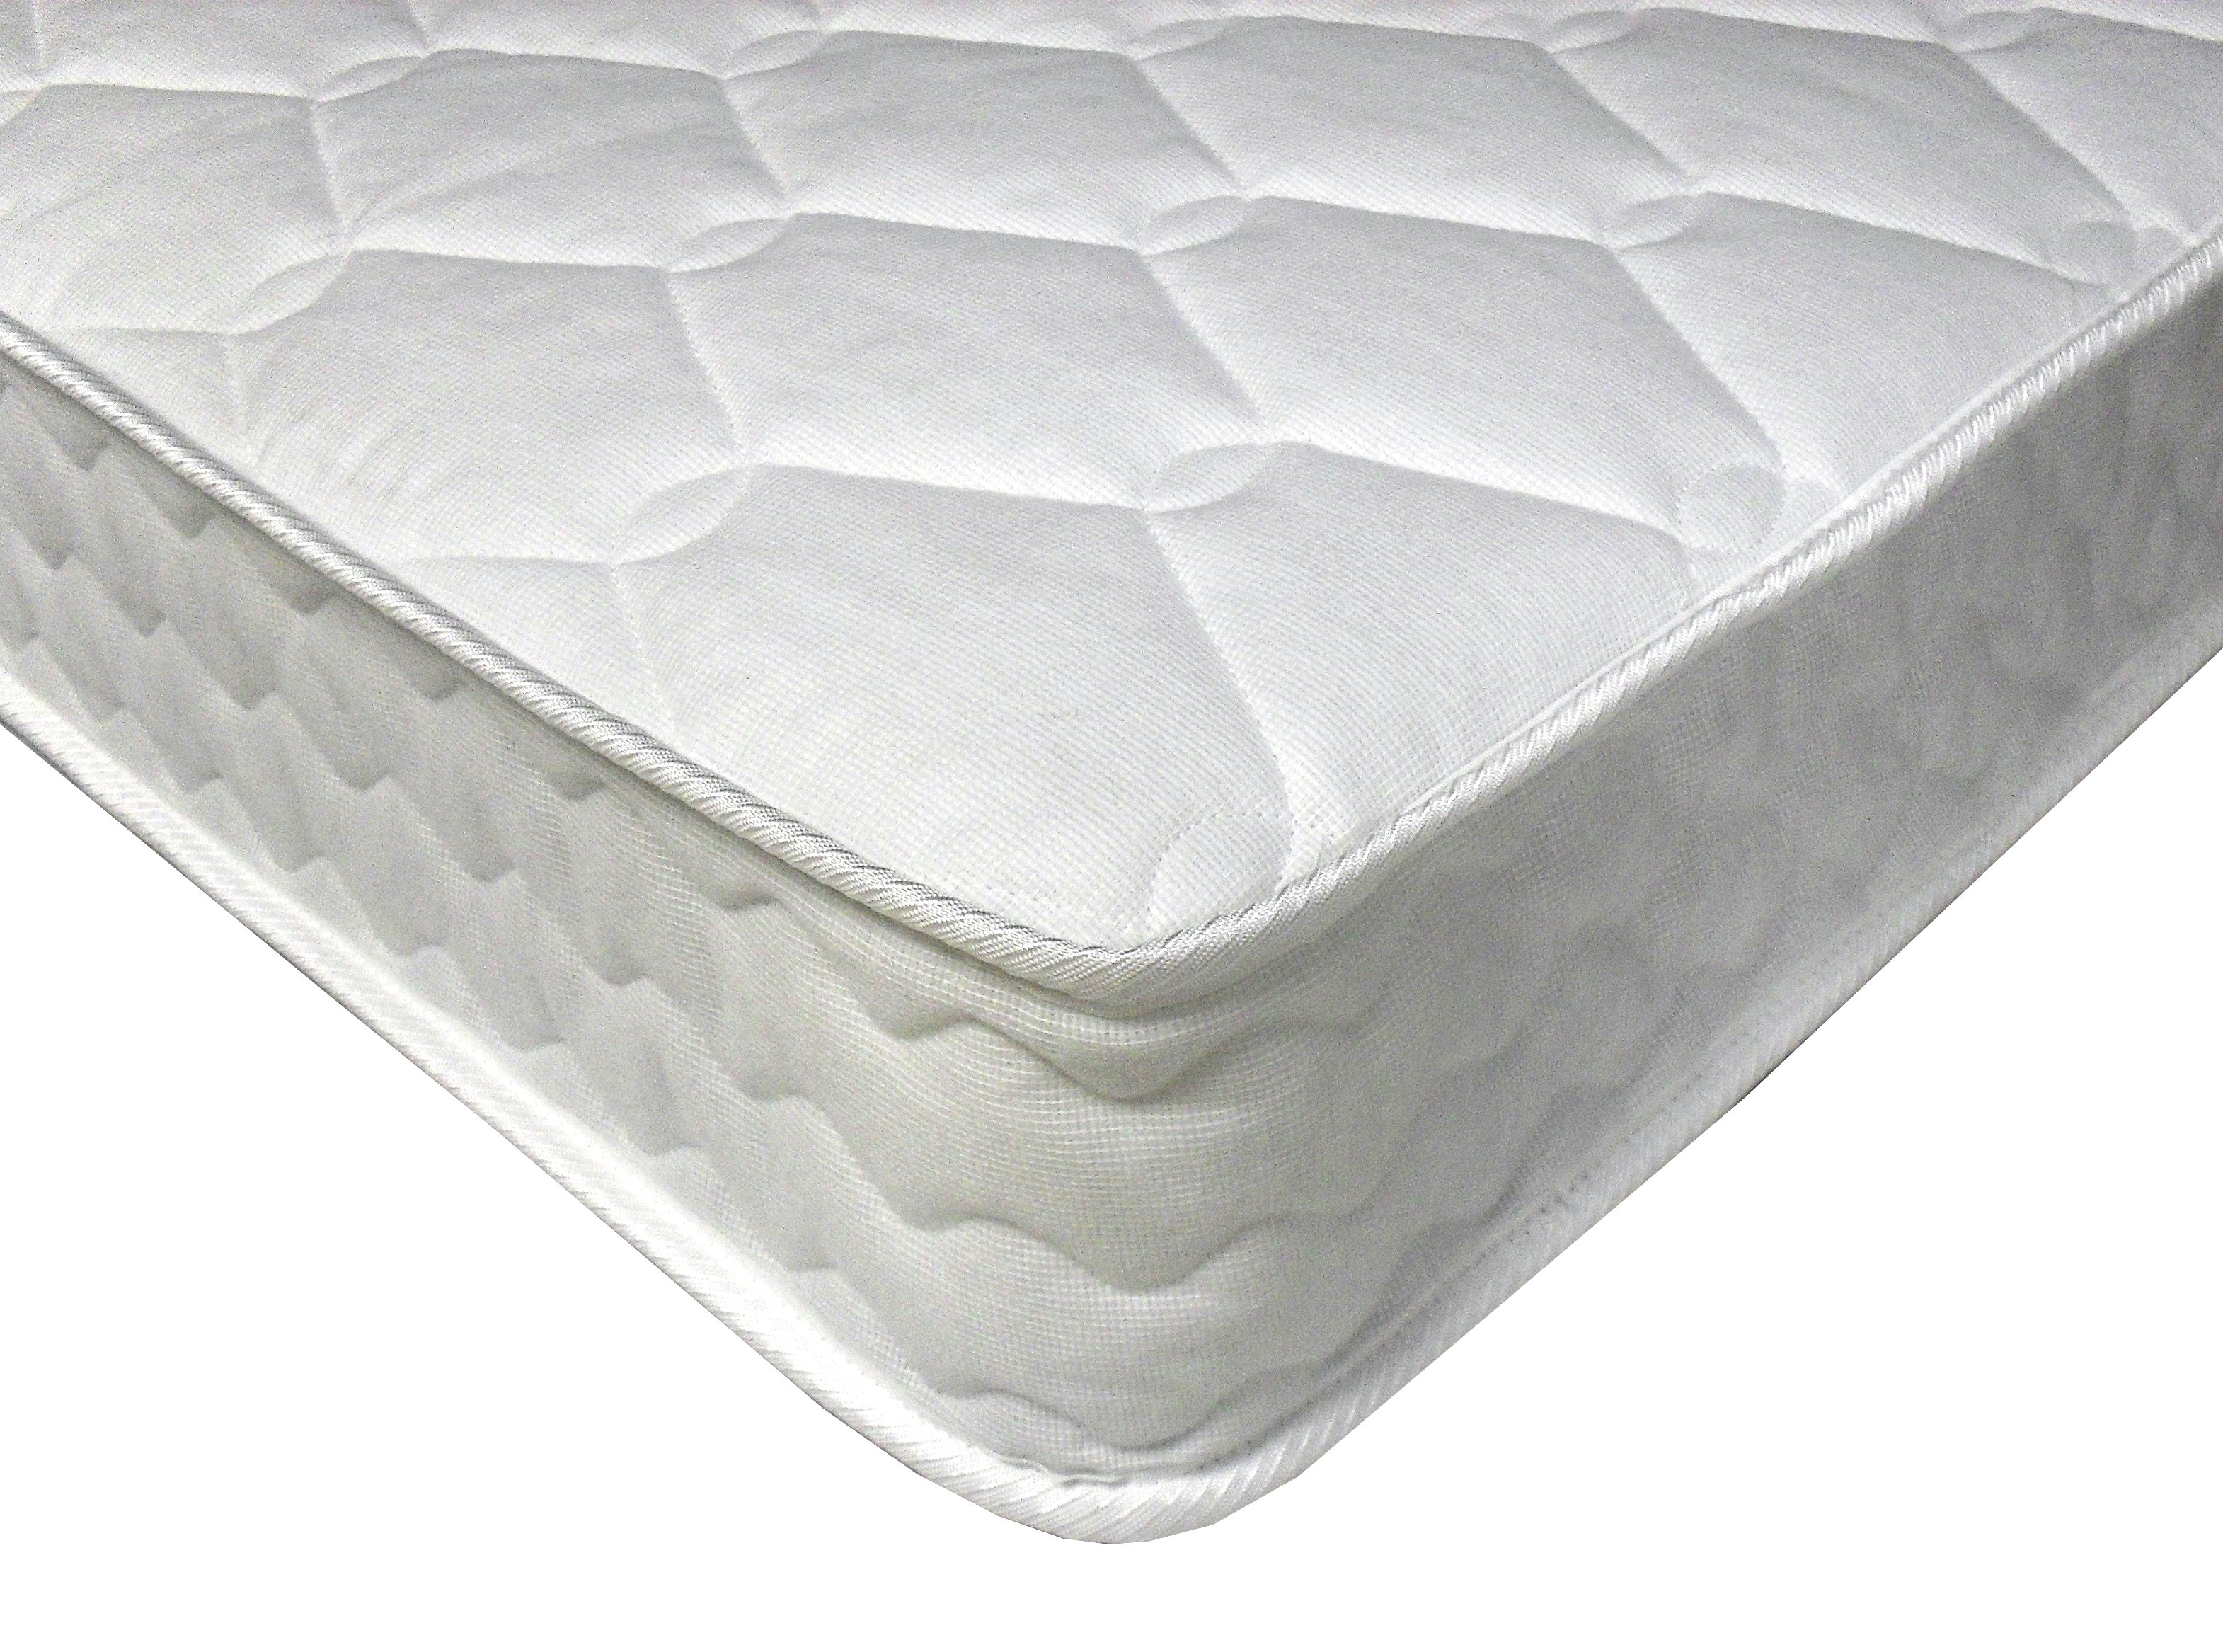 Rolled Single Mattress Lloyd Single Rolled Pocket Mattress Review